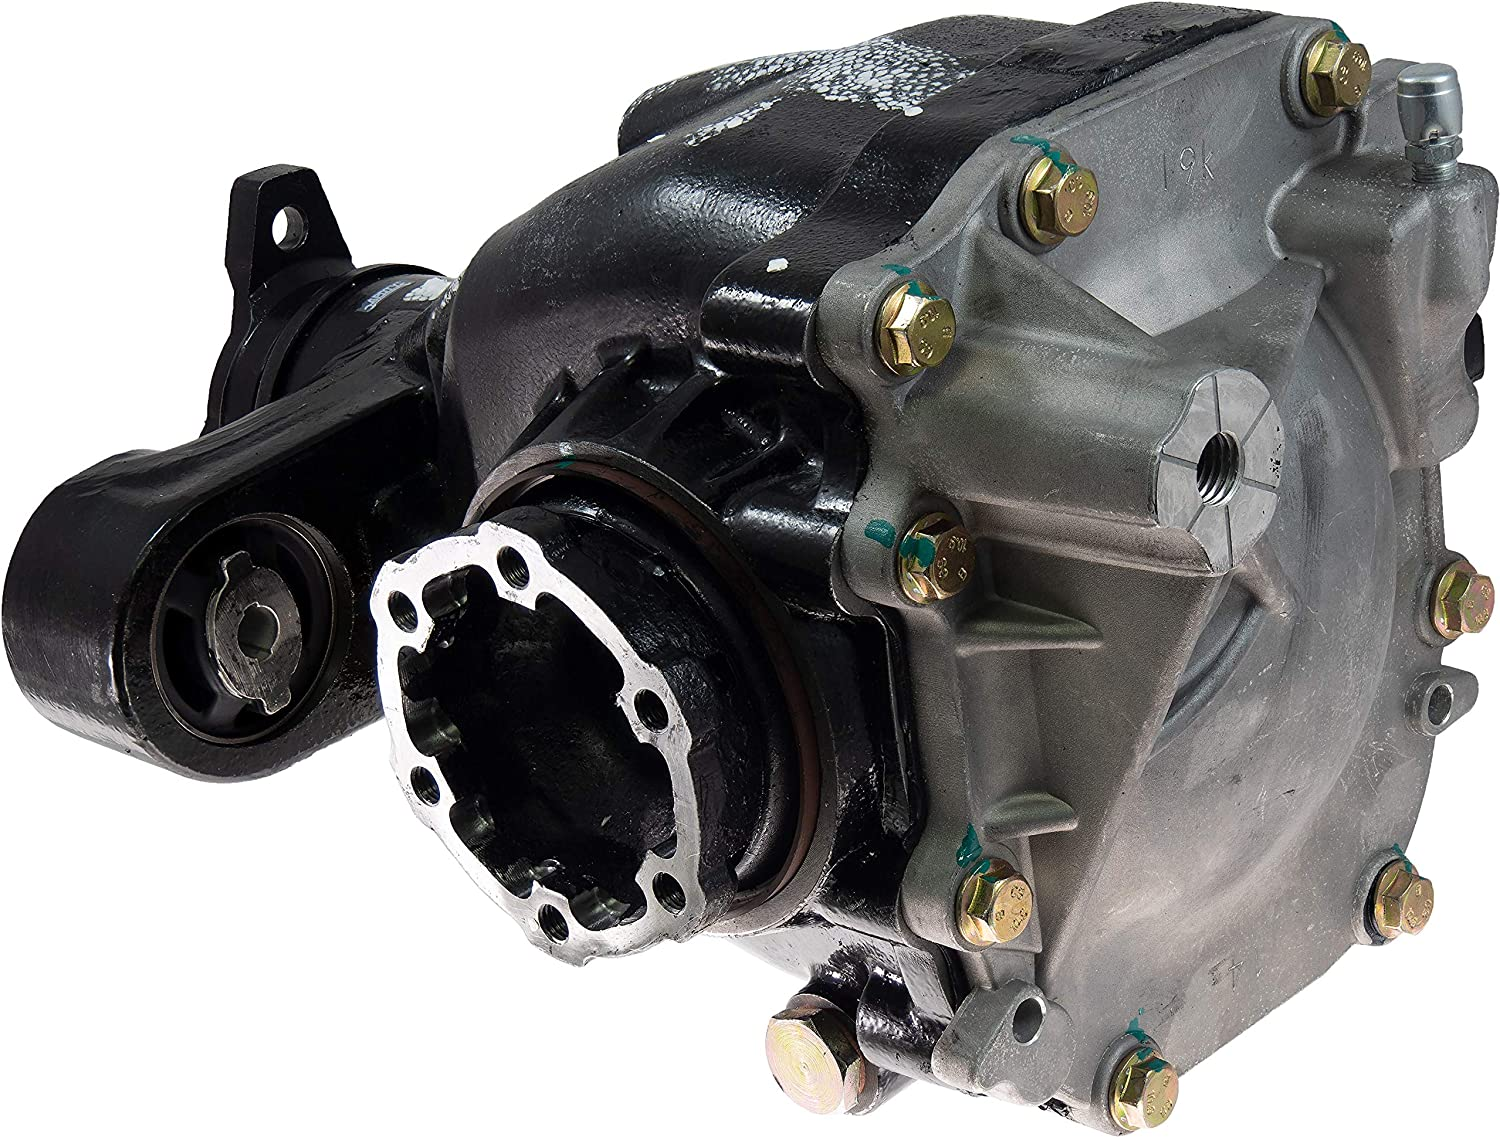 APDTY 143147 AWD All Wheel Drive Differential Assembly Fits Rear Cadillac ATS